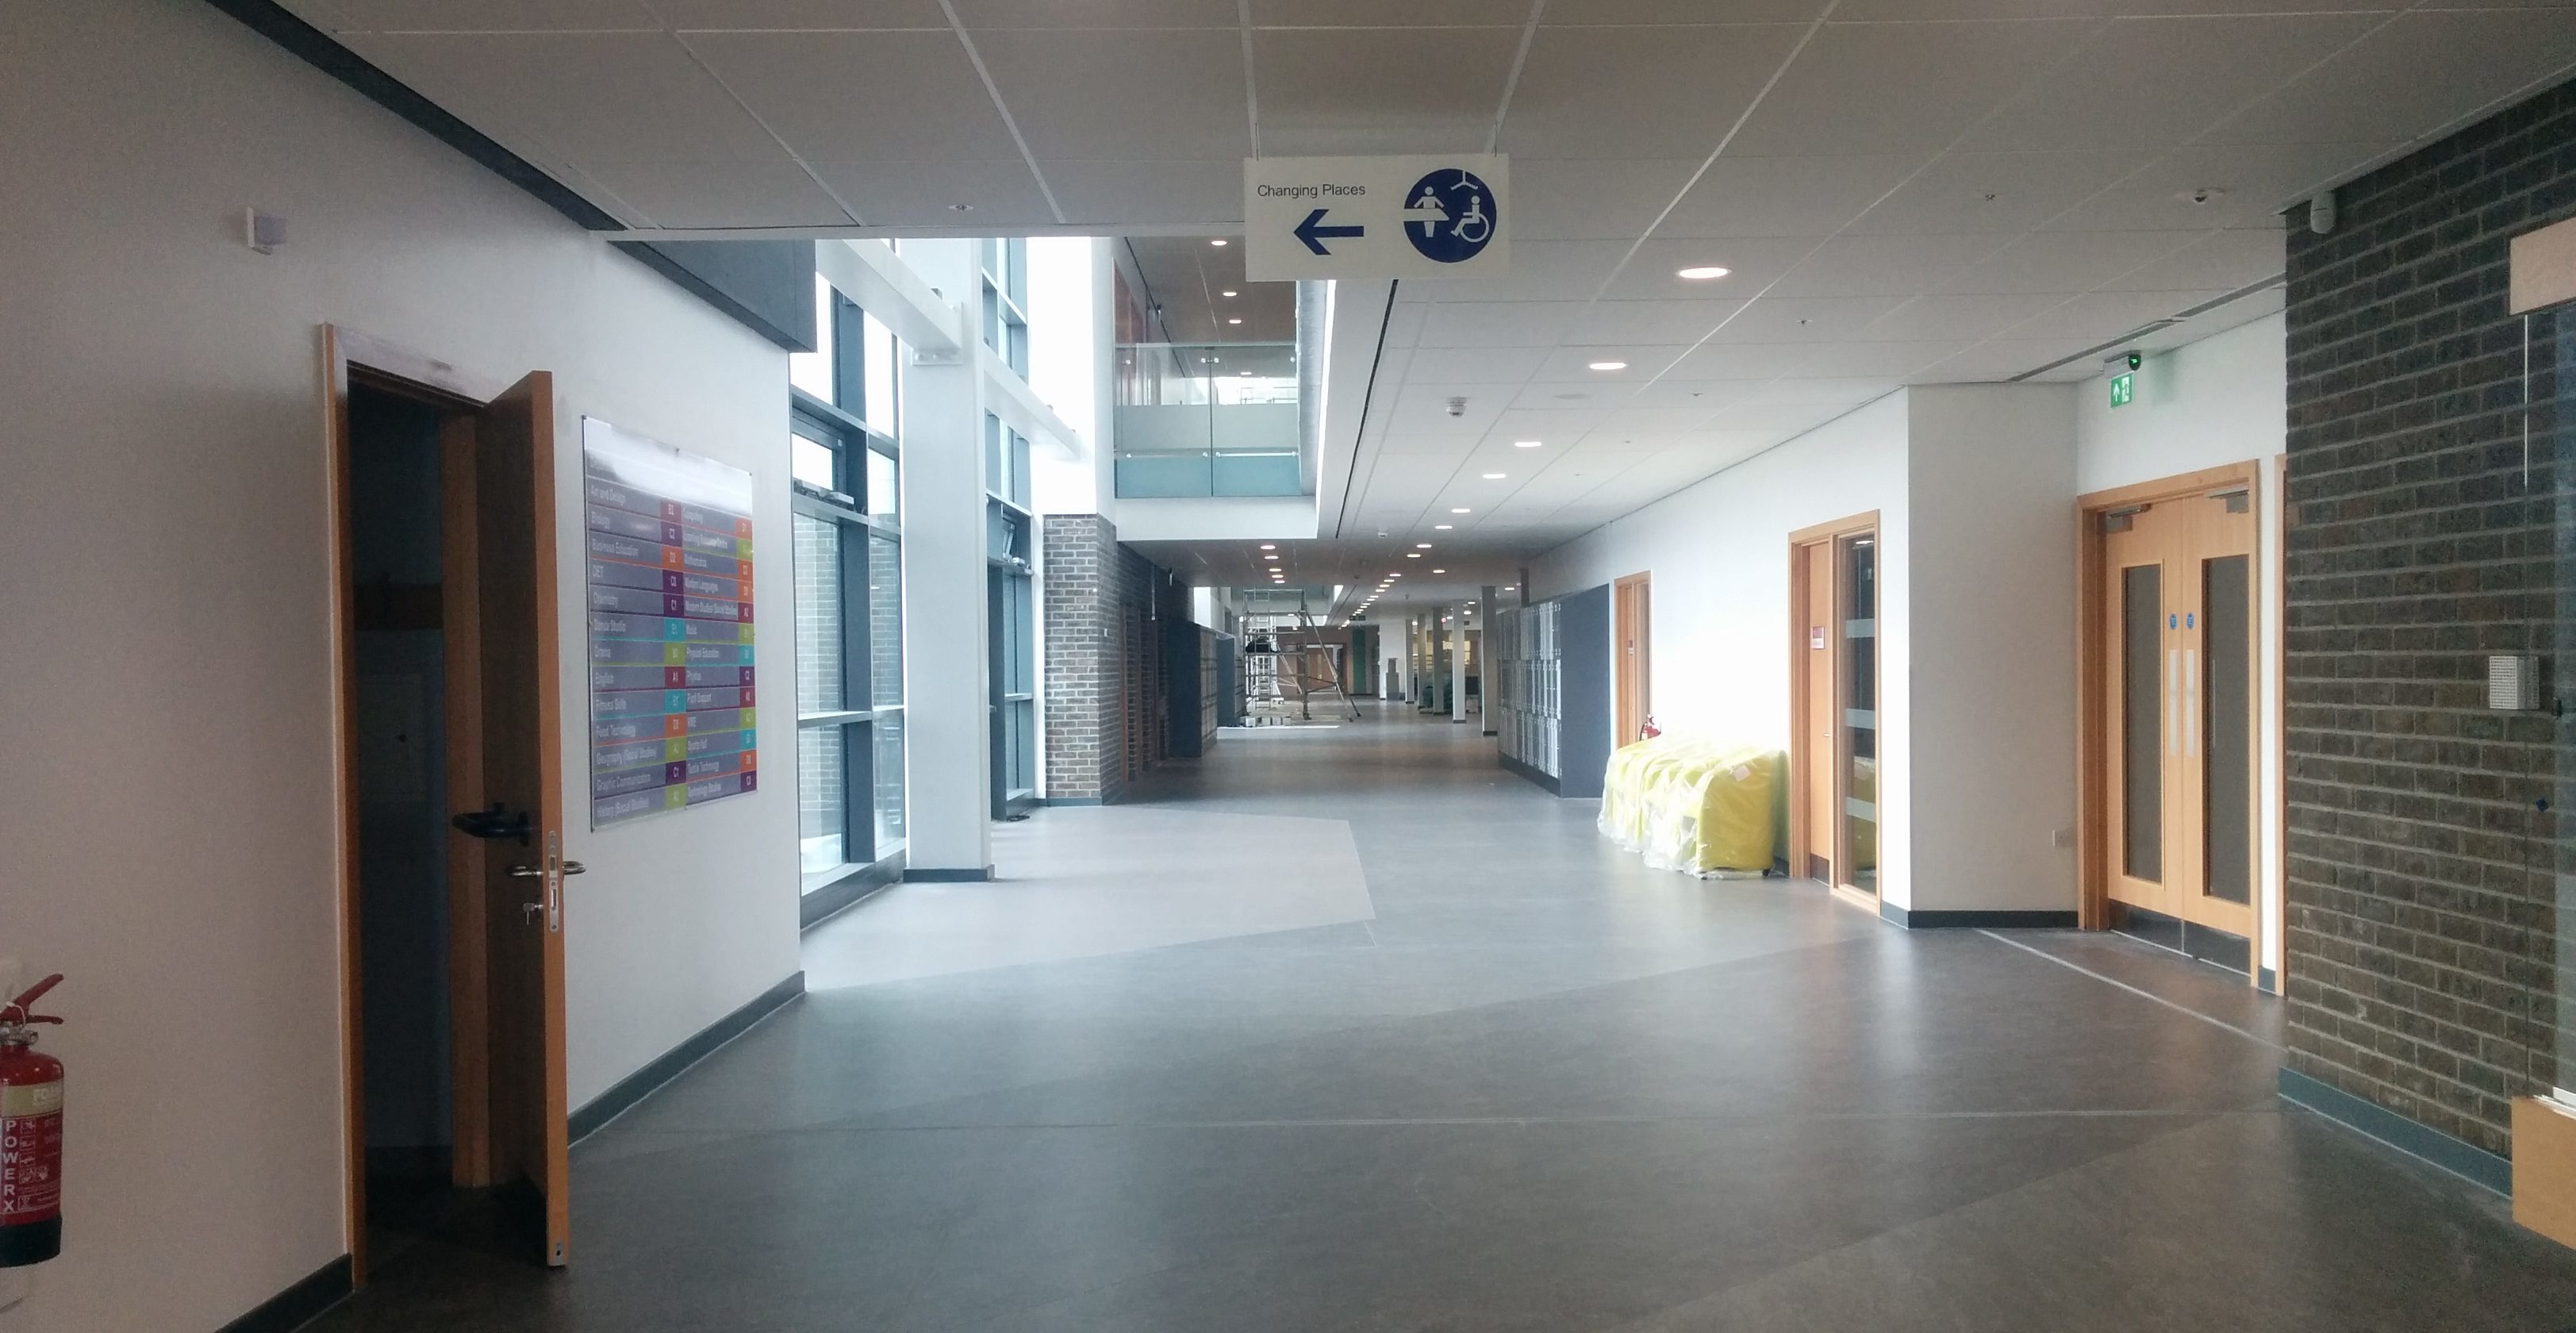 The impressive entrance to the new £44 million Levenmouth Academy.